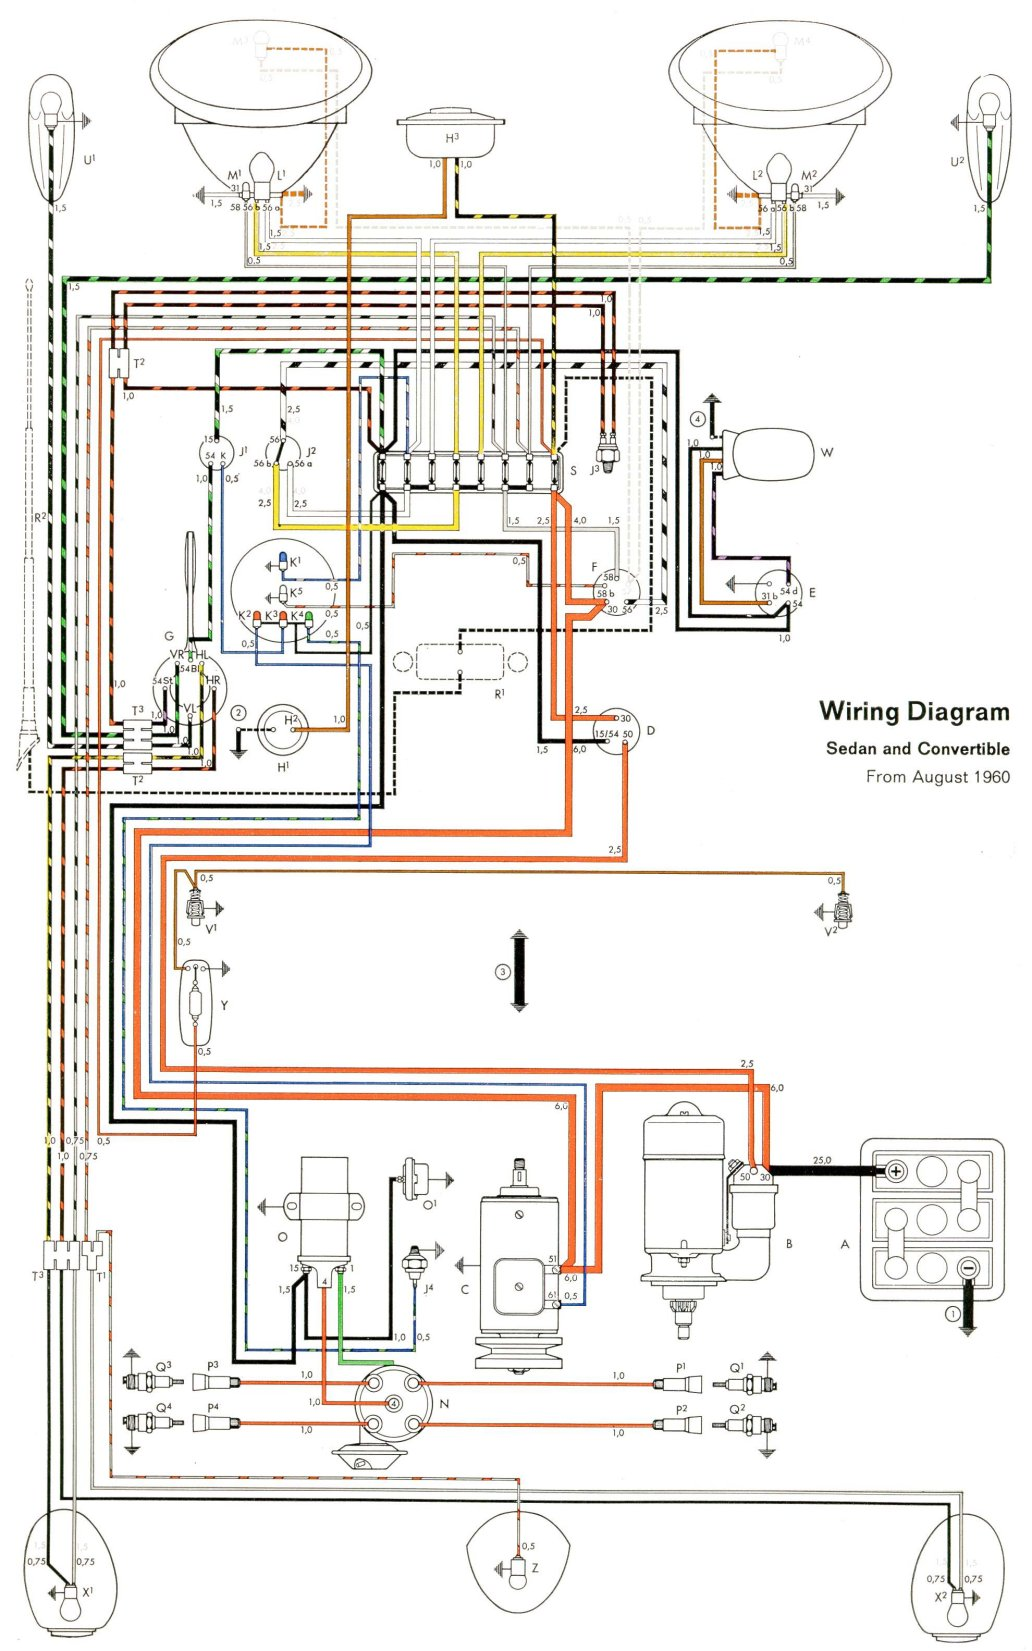 1974 vw bug wiring wiring diagram detailed 69 VW Bug Parts thesamba com type 1 wiring diagrams 1967 vw bug wiring 1974 vw bug wiring